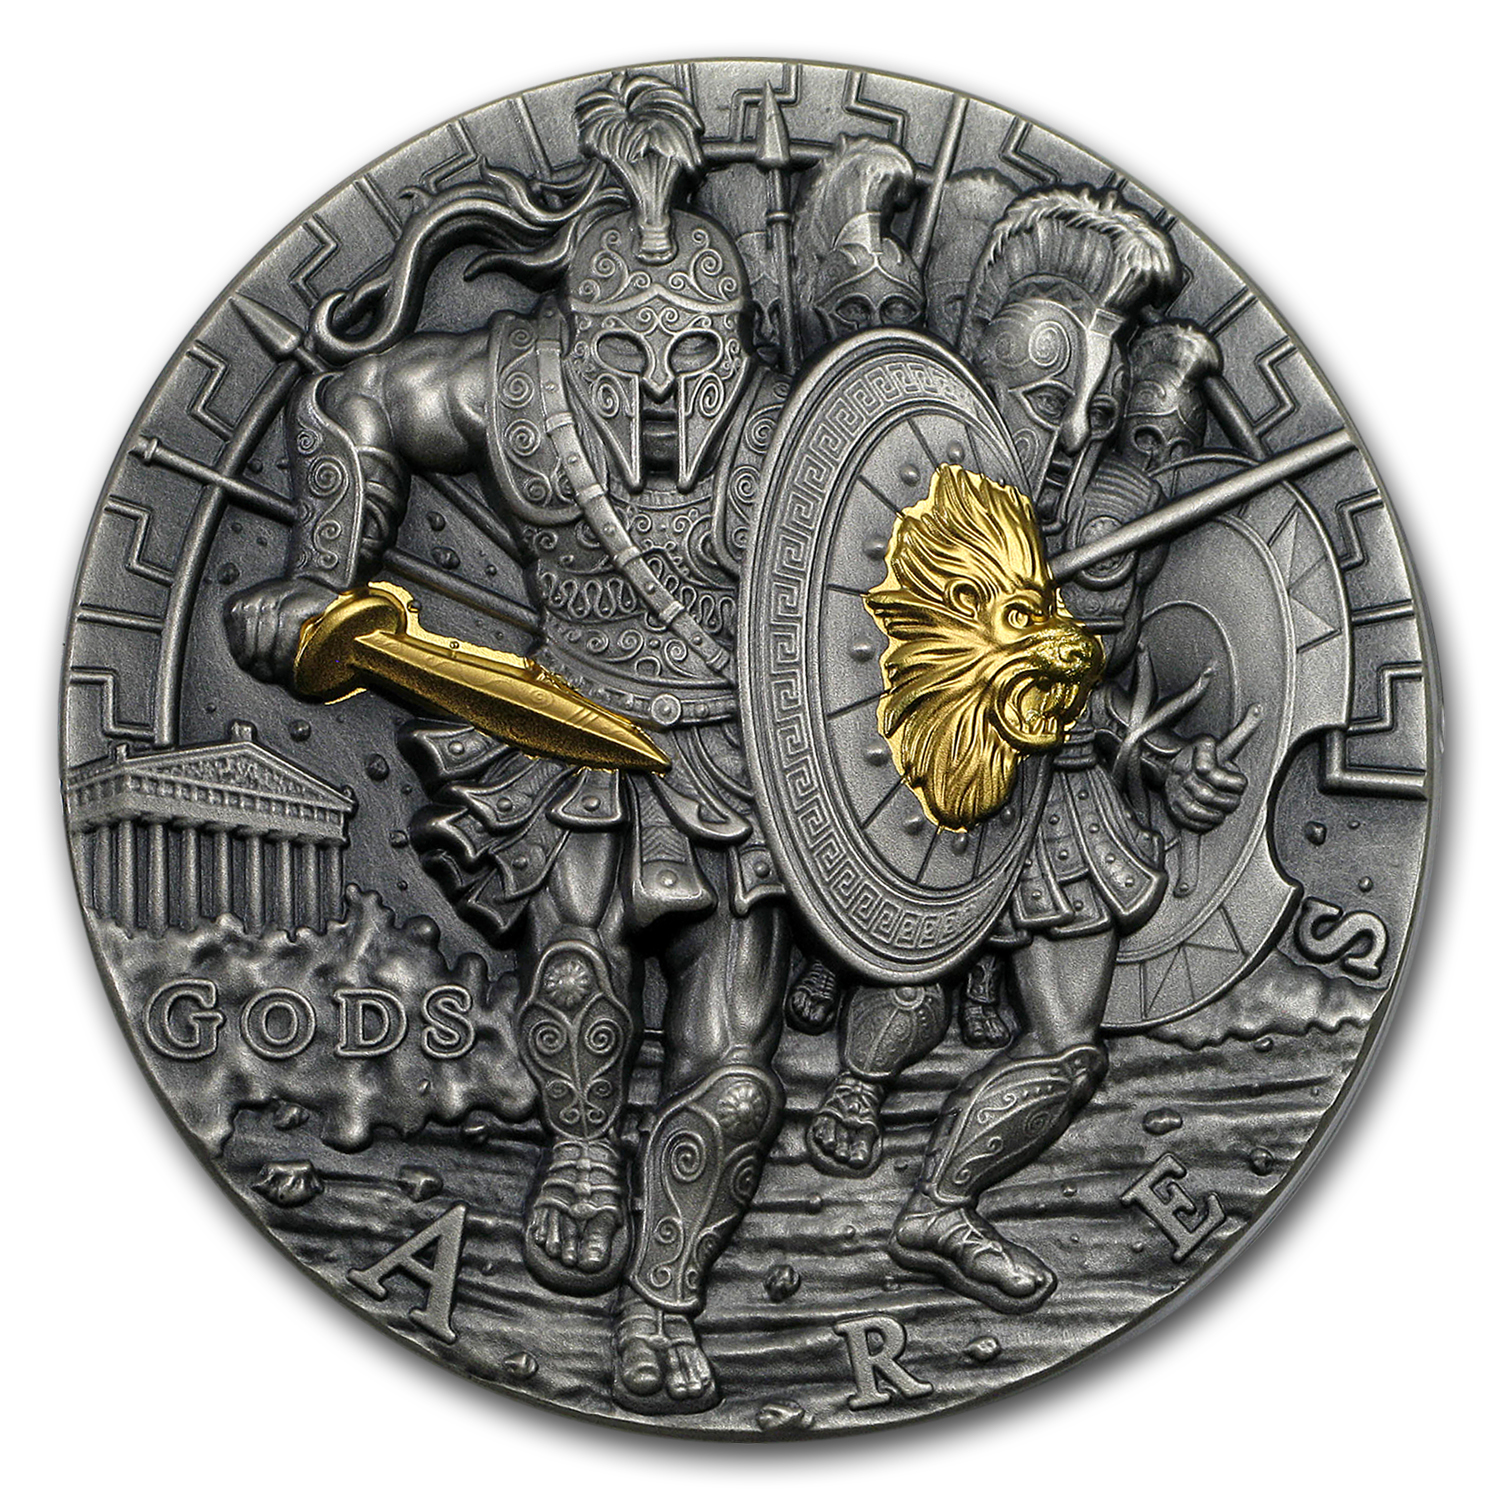 2017 Niue 2 oz Antique Silver Gods of War Ares Ultra High Relief